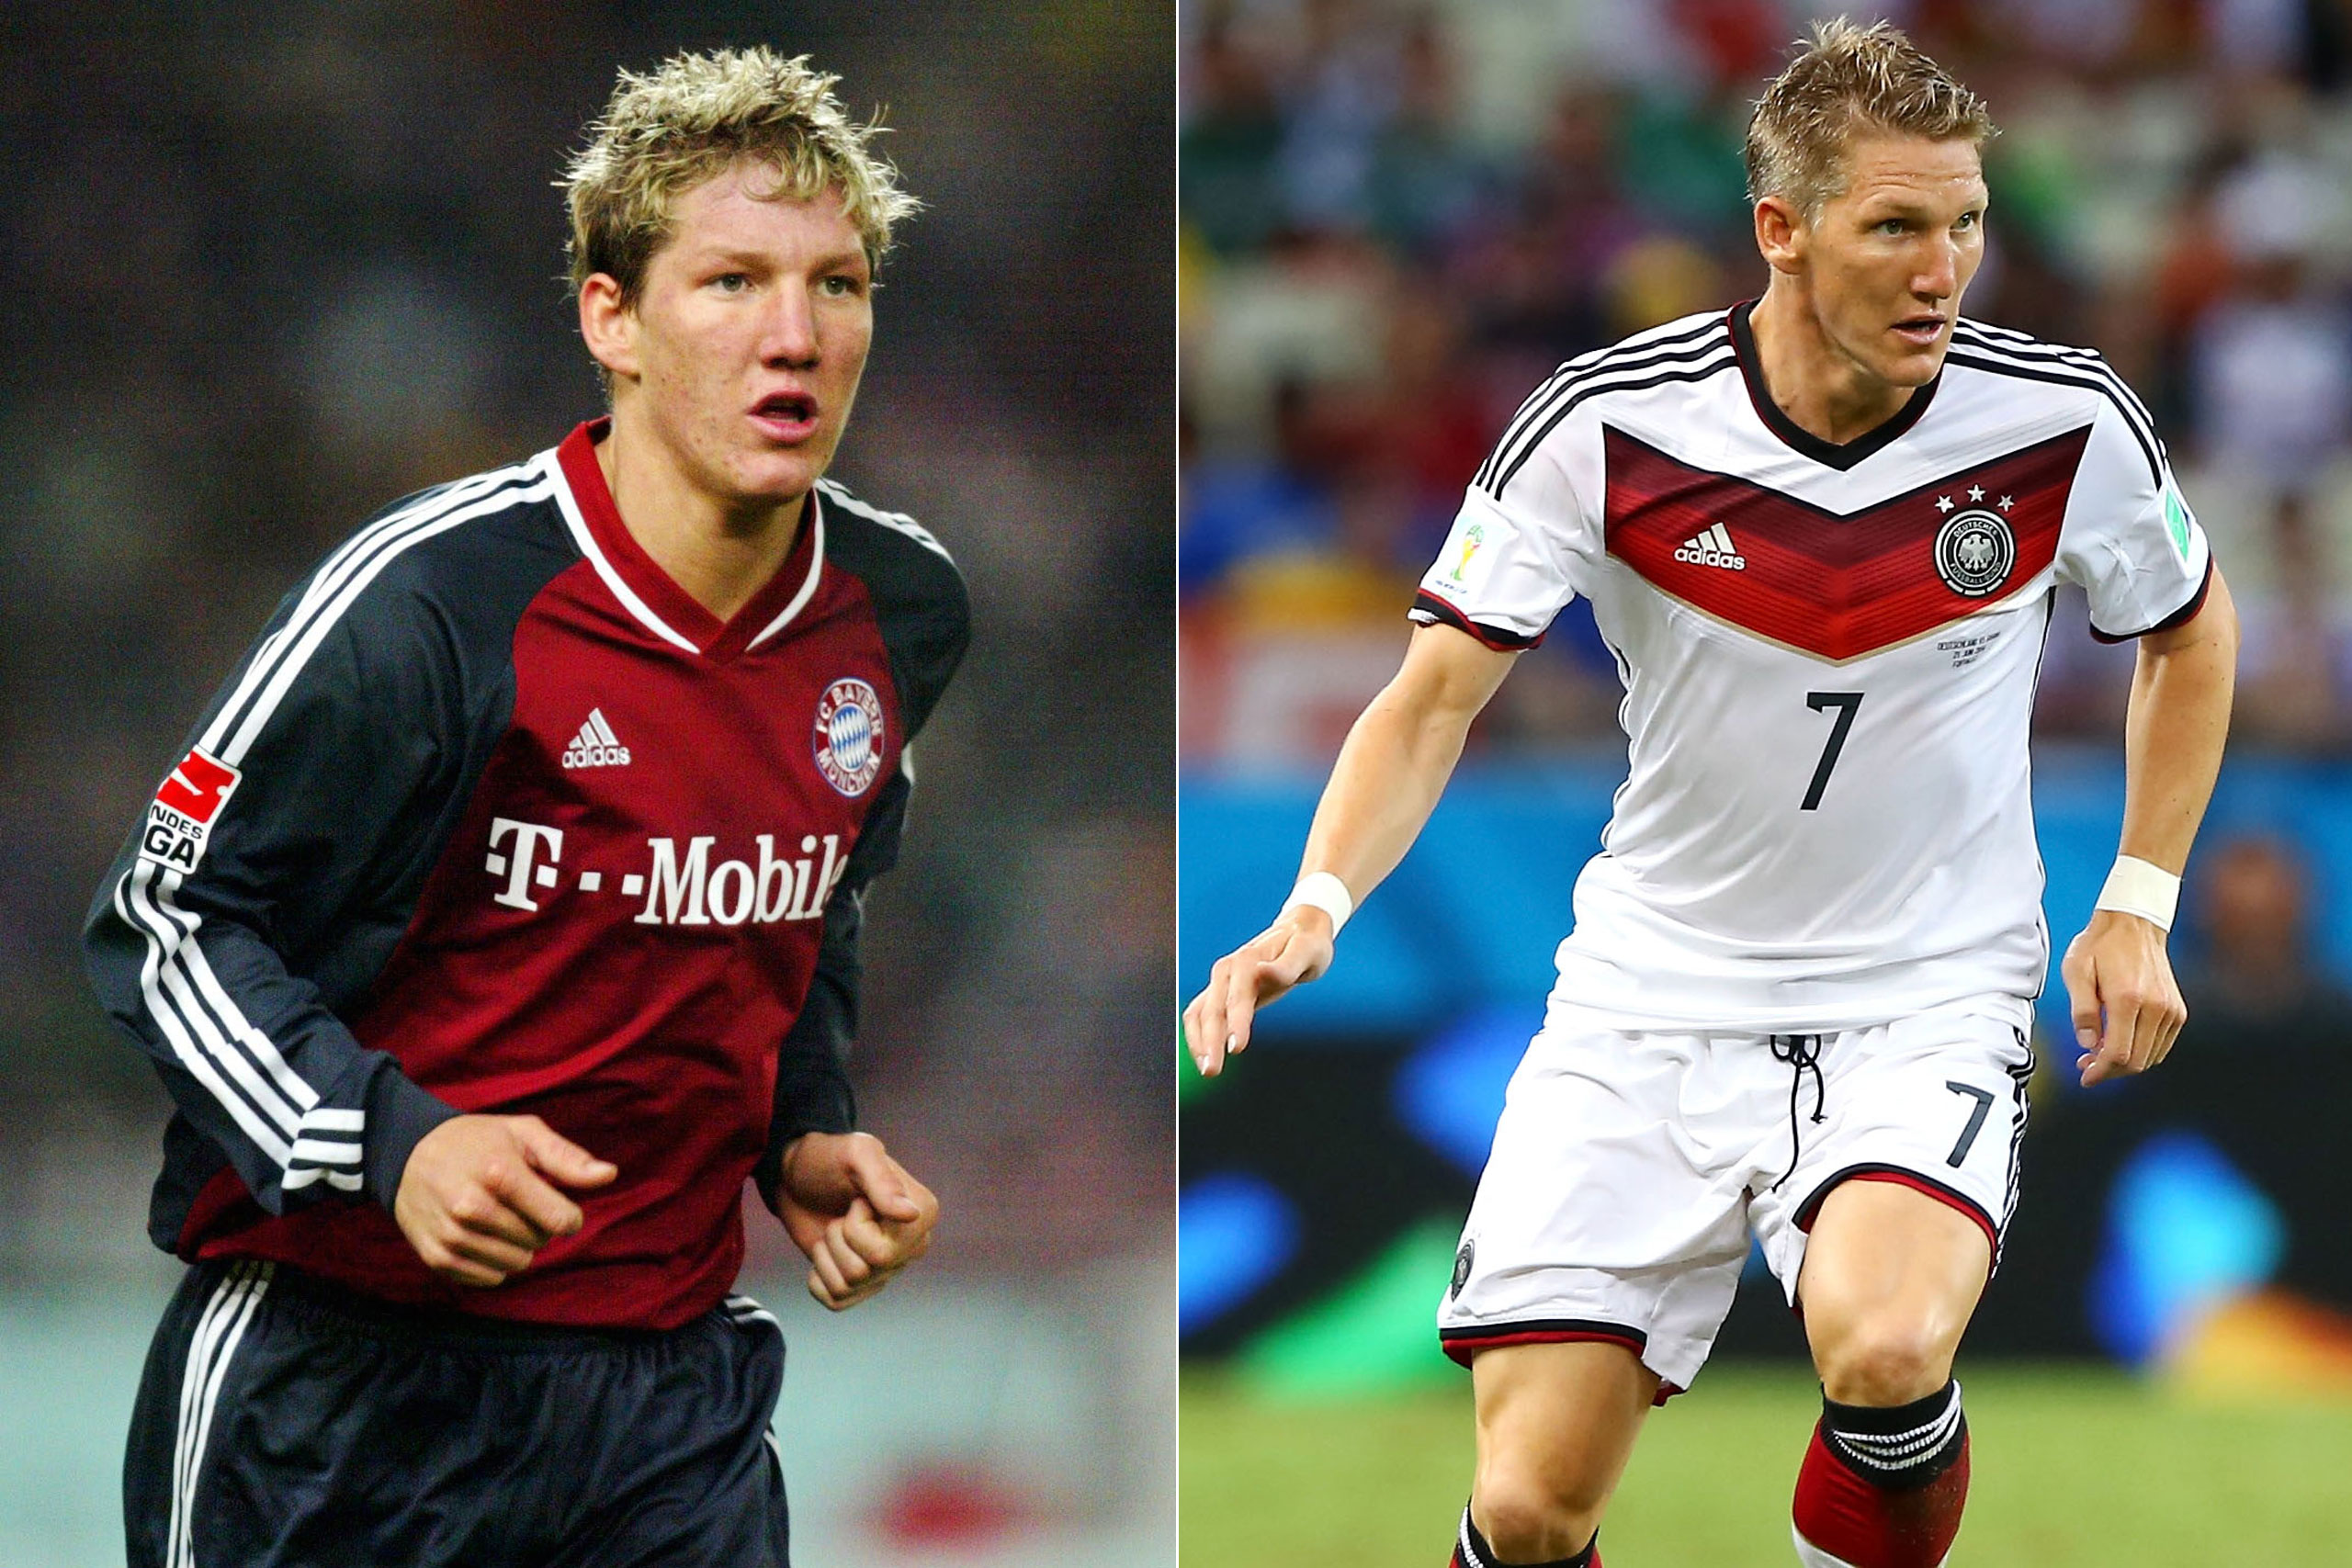 Left: Bastian Schweinsteiger in 2002; Right: Bastian Schweinsteiger playing for Germany at the FIFA World Cup in Brazil, 2014.